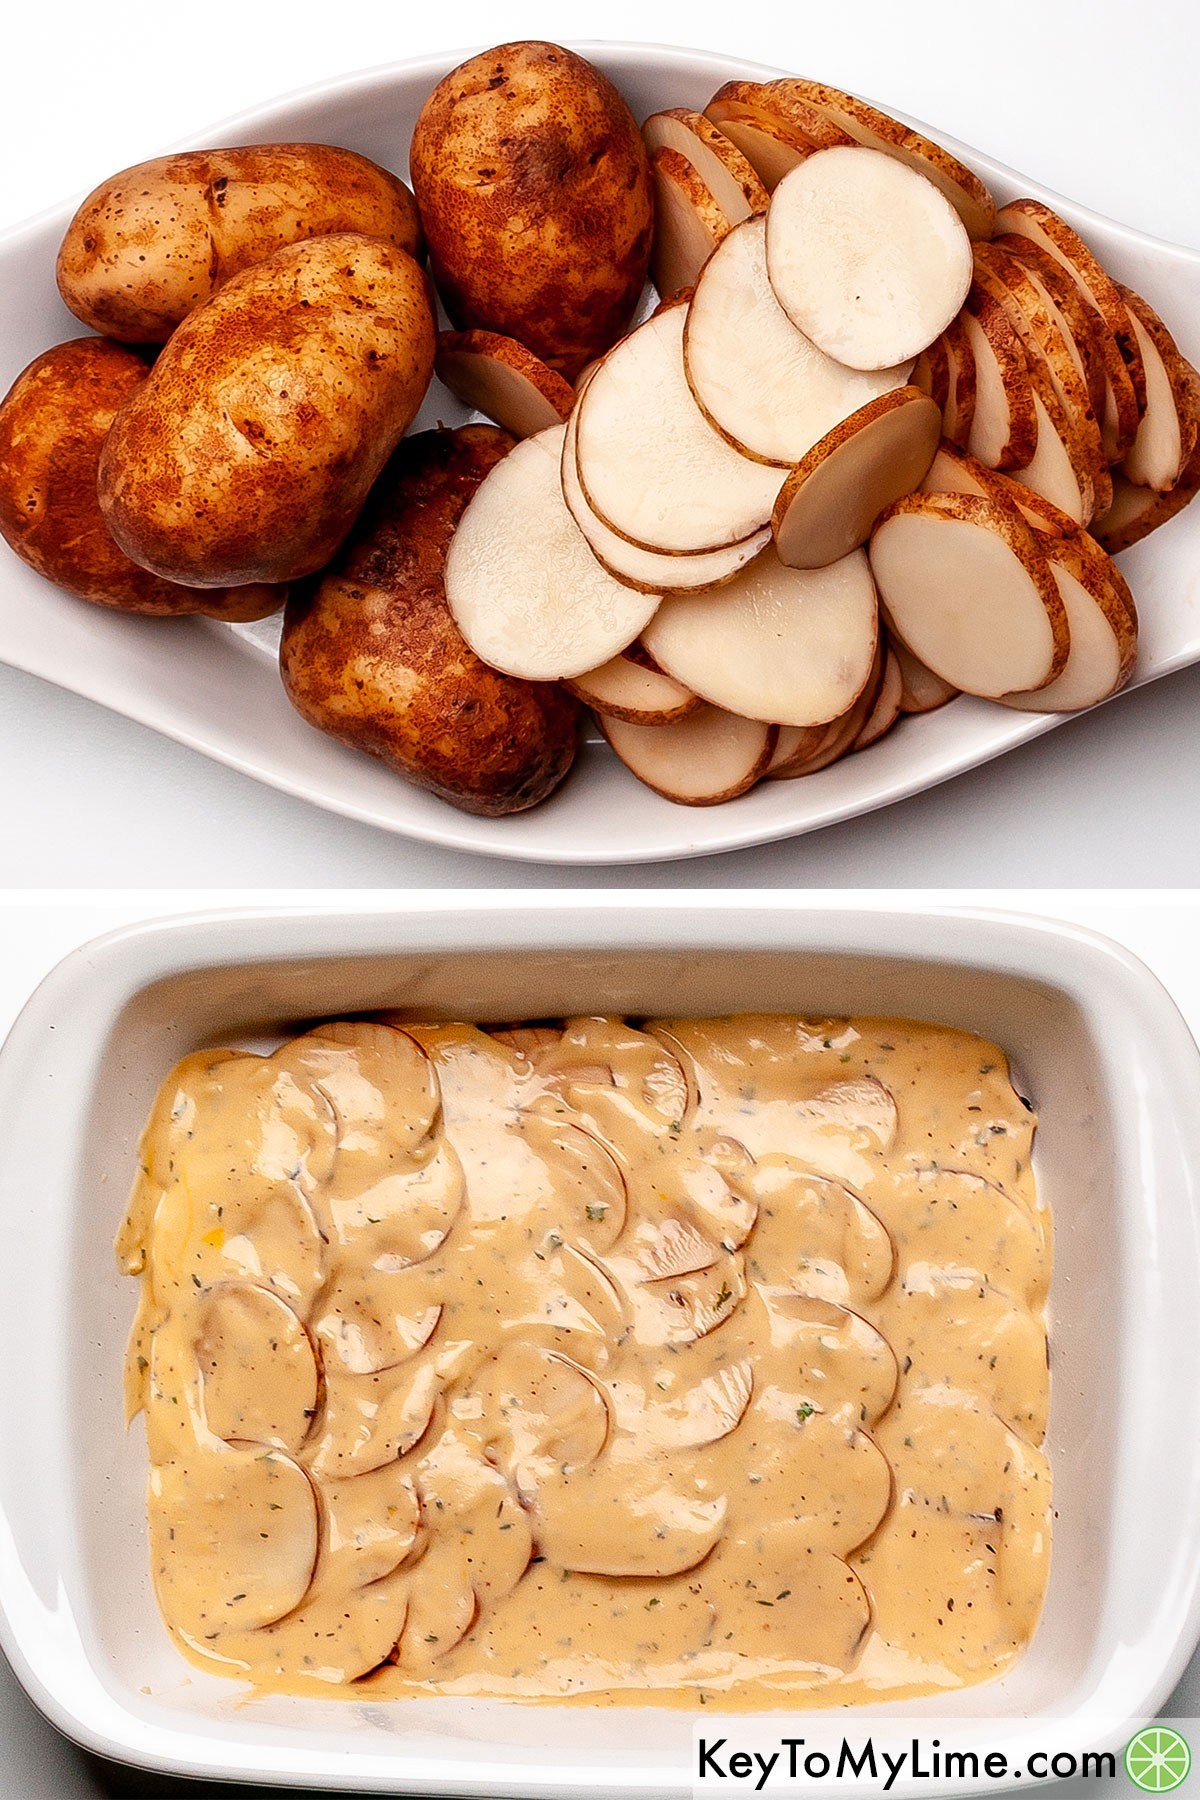 A process collage showing slicing russet potatoes and than layering them in a casserole dish with cheesy sauce.